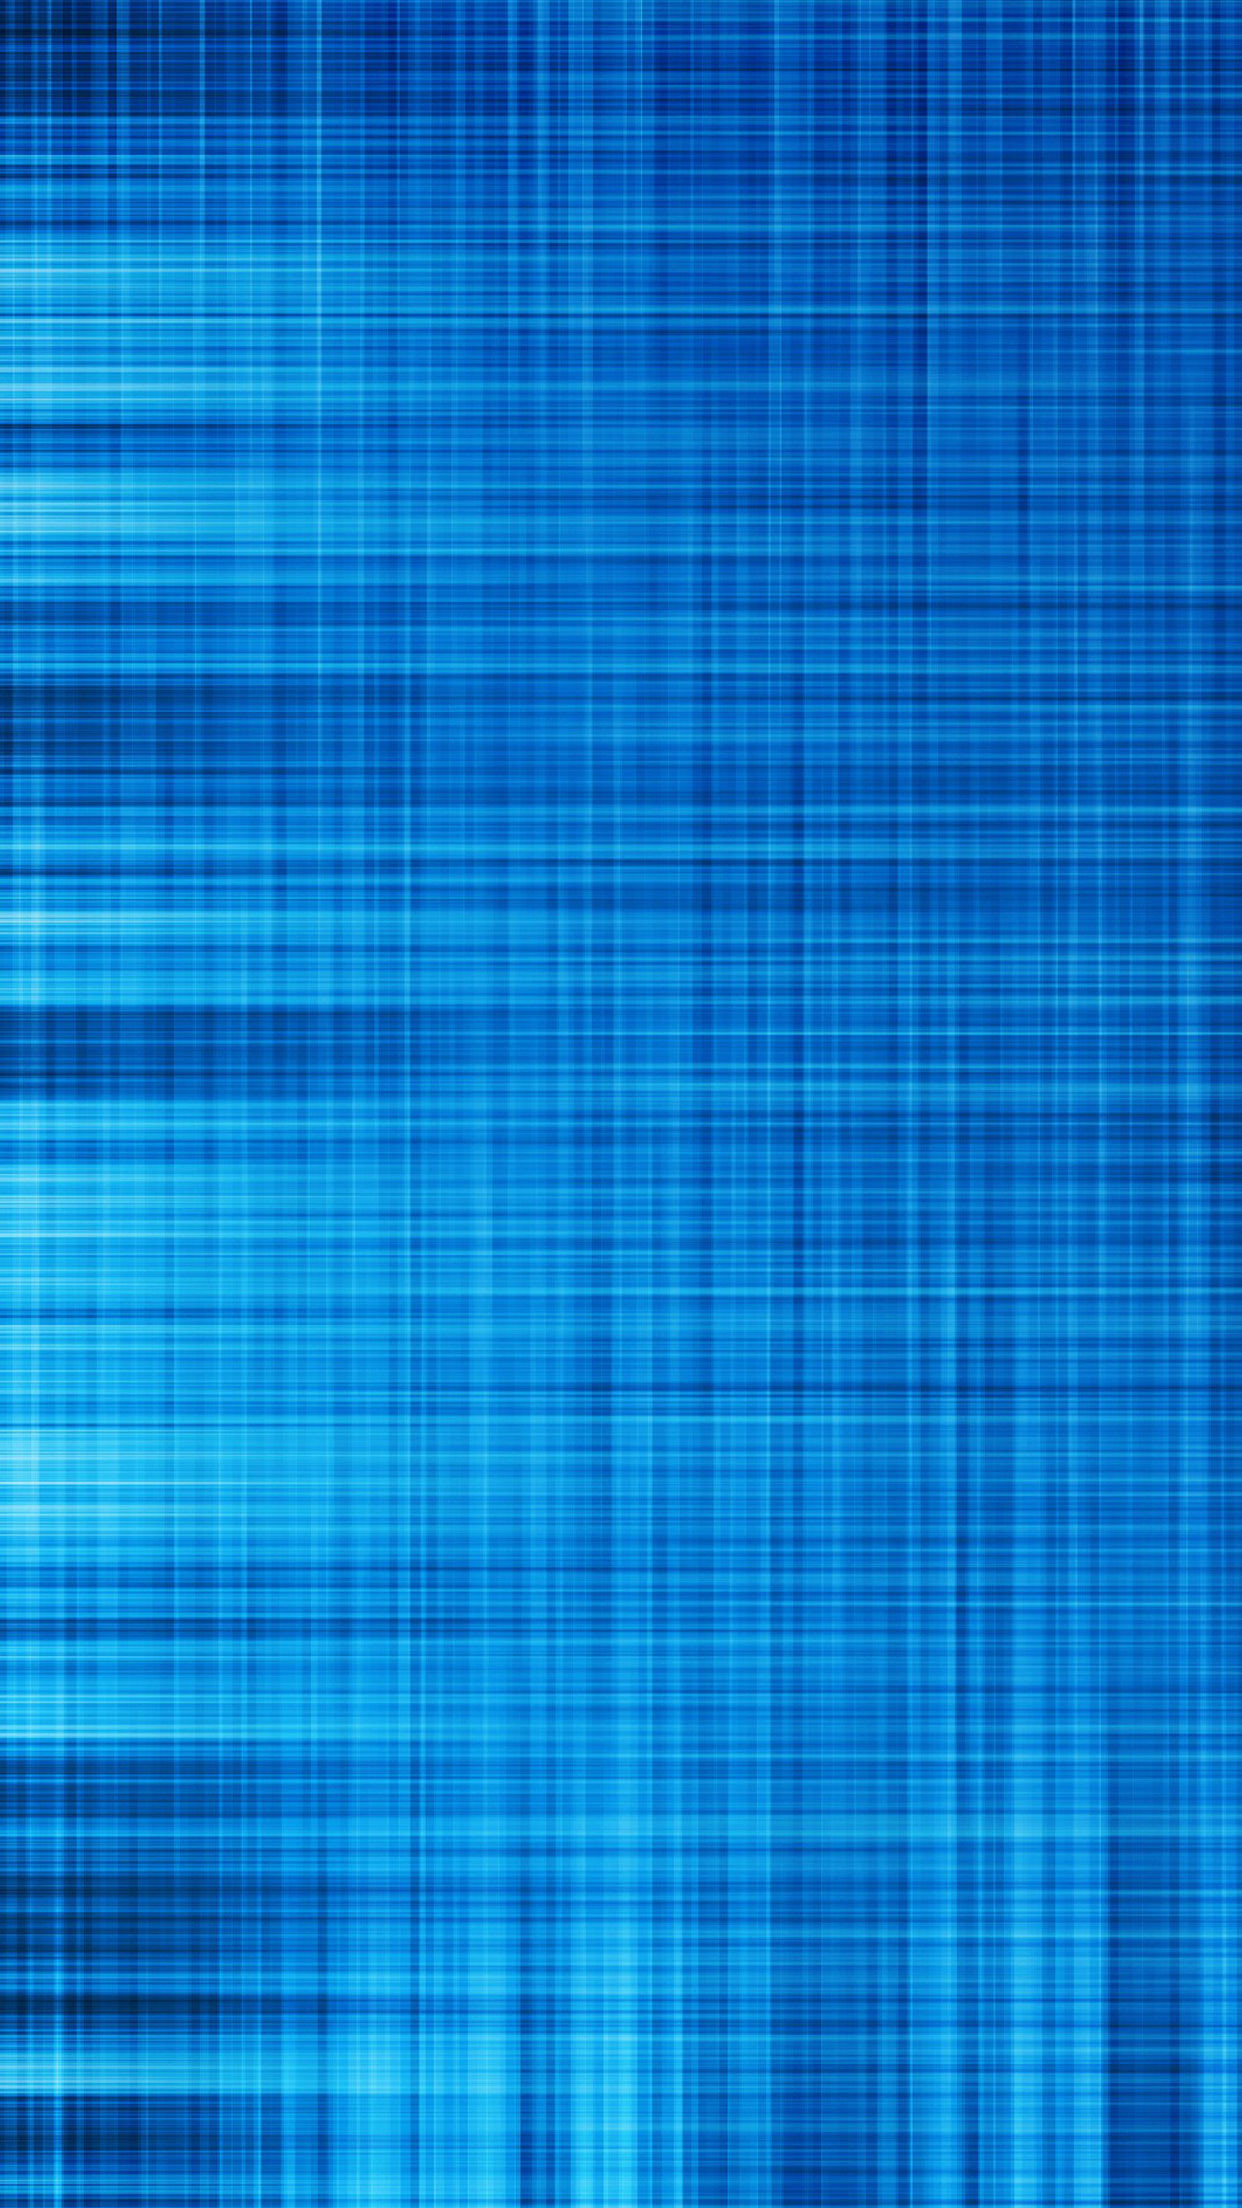 Blue Abstract lines wallpaper for #Iphone #android #abstract #wallpaper  more on wallzapp